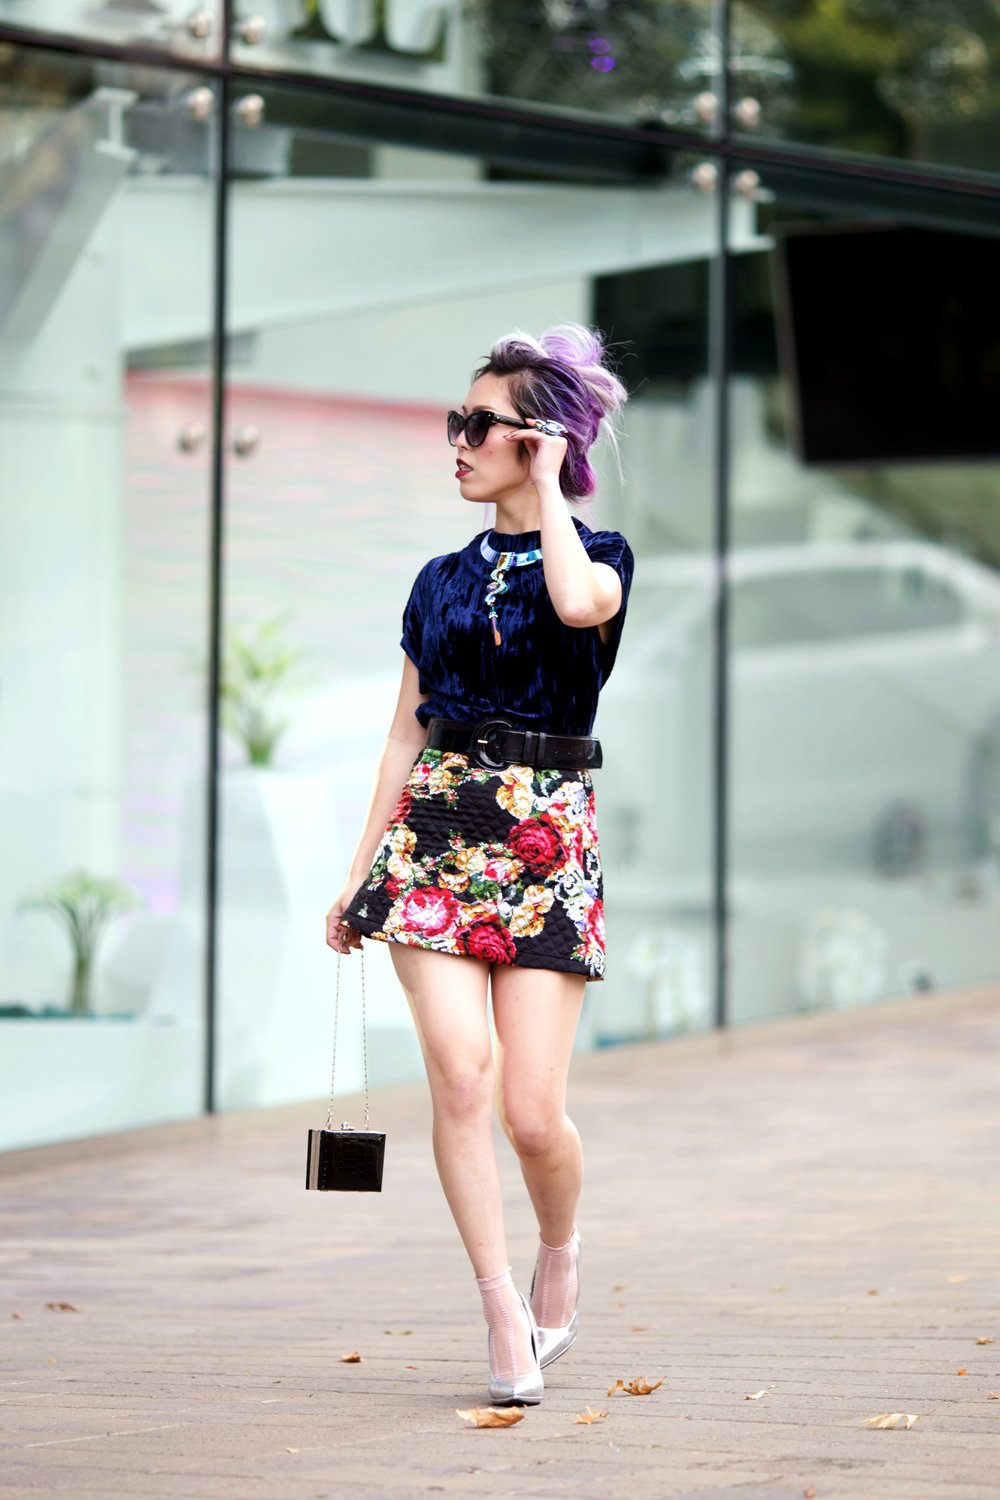 ZARA Blue Velvet Top_Forever 21 Floral Print Mini Skirt_Mango Patent Belt_Kate Spade Sheer Ankle Socks_Qupid Silver Pumps_Aldo Cateye Sunglasses_Swarovski Fluorescent Necklace & Fluorescent Ring_Aika's Love Closet_Seattle Fashion Blogger_Japanese_Lavender Hair_Mermaid Hair 17